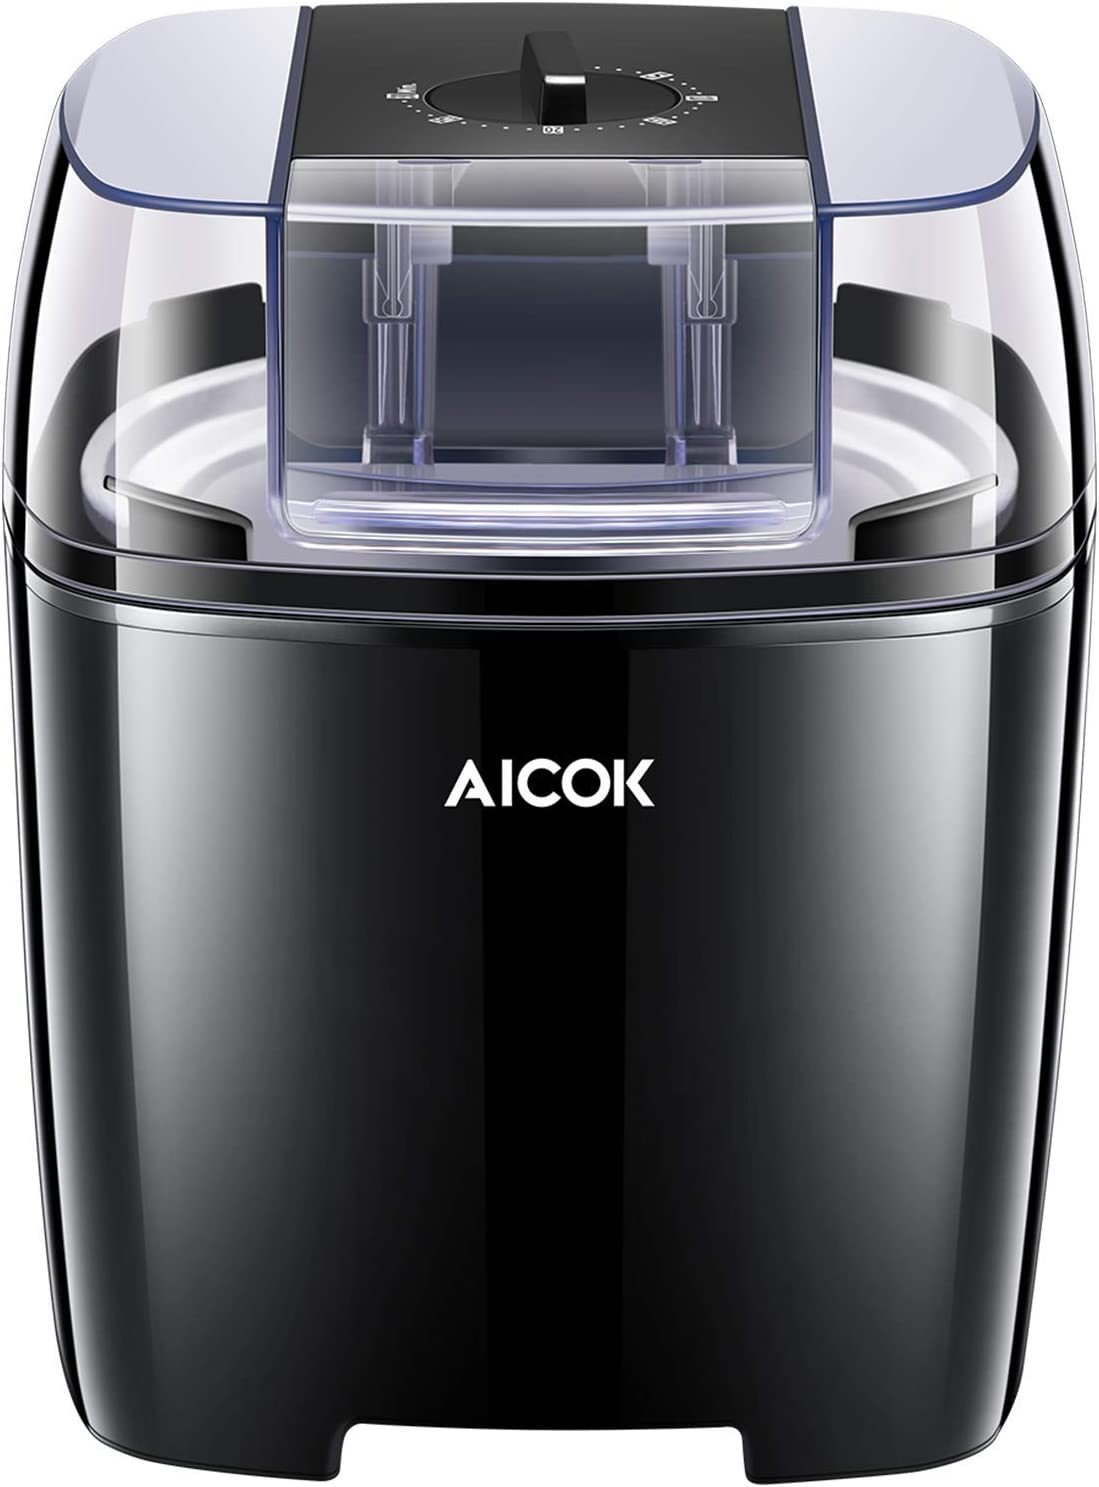 Aicok Ice Cream Maker, Frozen Yogurt and Sorbet Machine BPA Free with Timer Function, Easy Homemade Ice Cream with Instruction Book, 1.6 Quart, Black